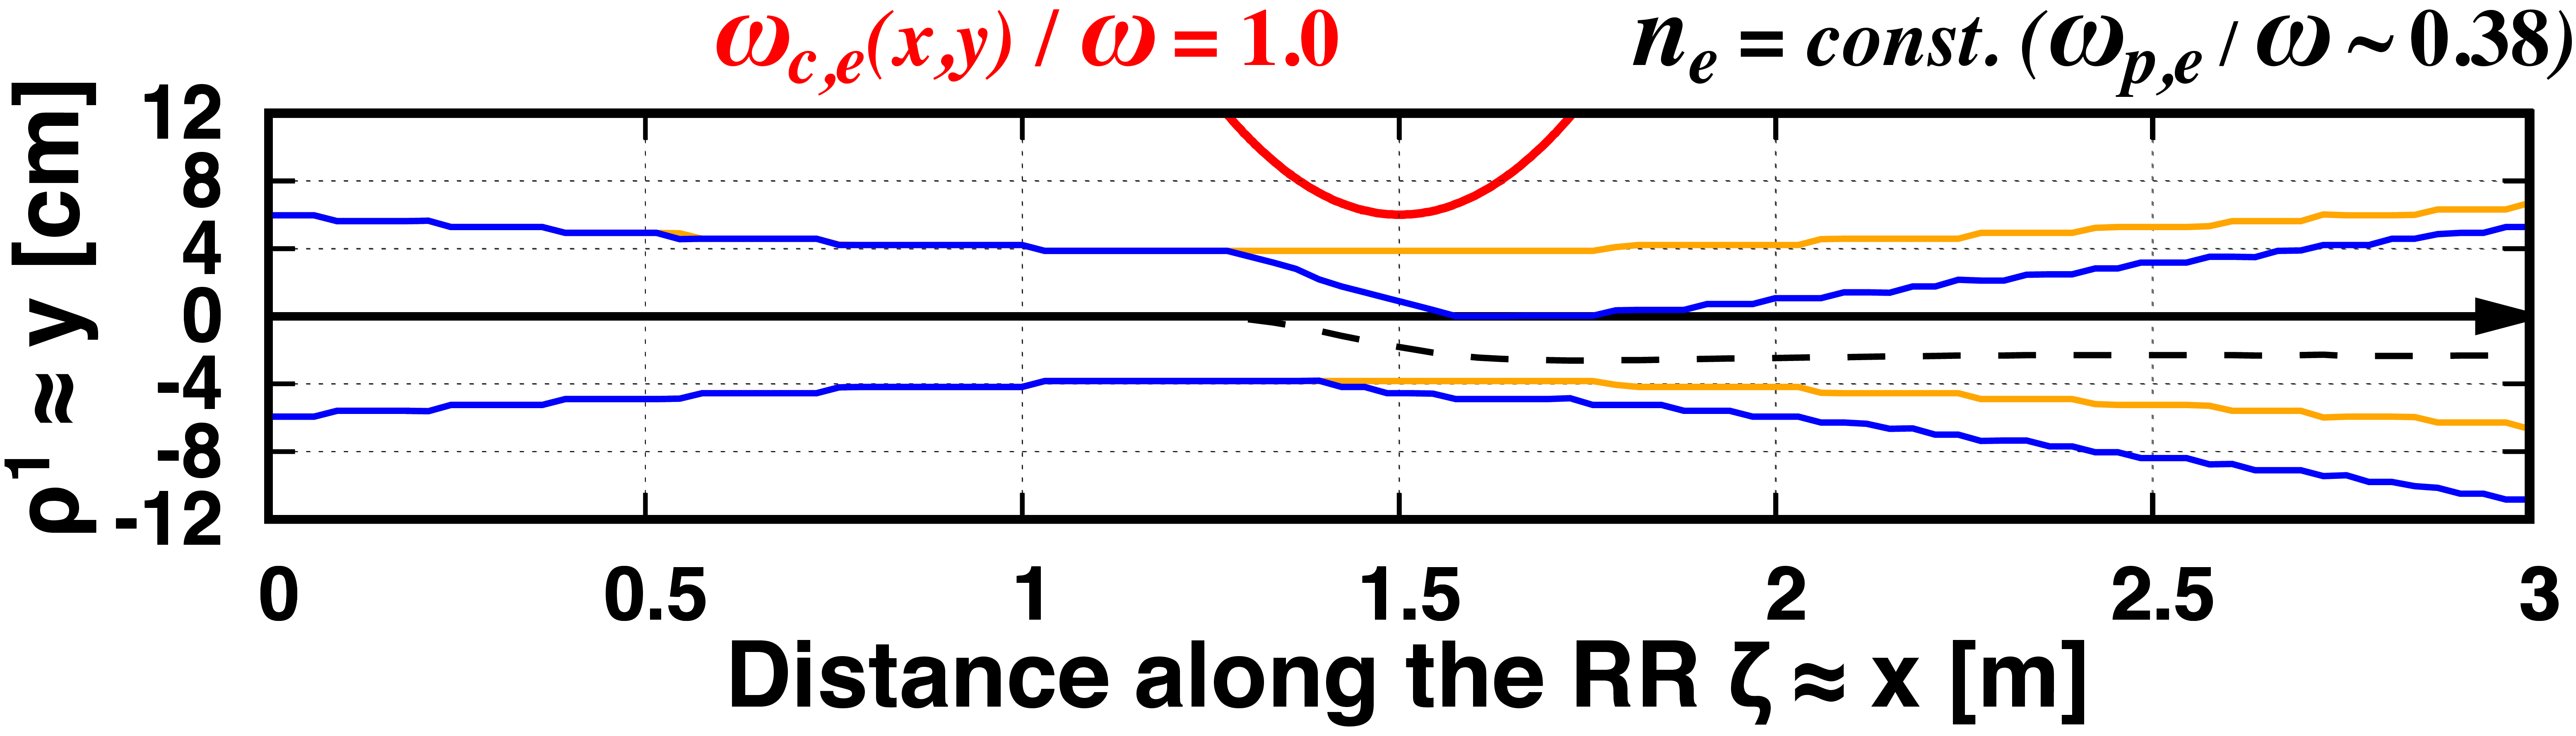 PARADE simulation result of the O-mode wave beam with frequency $f = 77.0$ GHz, propagating along $x$ axis and partially passing through the cyclotron resonance (red-line) in the hot electron plasma with constant density $n_{e} = 1.0 \times 10^{19}$ m$^{-3}$, constant temperature $T_{e} = 2.0$ keV, and magnetic field $(B_x,B_y,B_z) = B_0 (\cos \theta, 0.0, \sin \theta)$ where $B_0 = 7.3 \exp[-(x/1.5 - 1.0)^2-(y/5.0 - 1.0)^2]$ and $\theta = 80.0^\circ$. Blue-line shows the beam width along the RR (black-arrow), orange-line shows same simulation result in non-absorbed case as a reference, and black-dashed-line shows beam center trajectory which should be considered as true-ray trajectory. The wave beam is injected initially as Gaussian beam, but due to the inhomogeneous resonance structure where the wave power is absorbed non-uniformly across the beam, distorted and strongly diffracted to non-Gaussian beam. Also, beam center position is diverged from the RR.